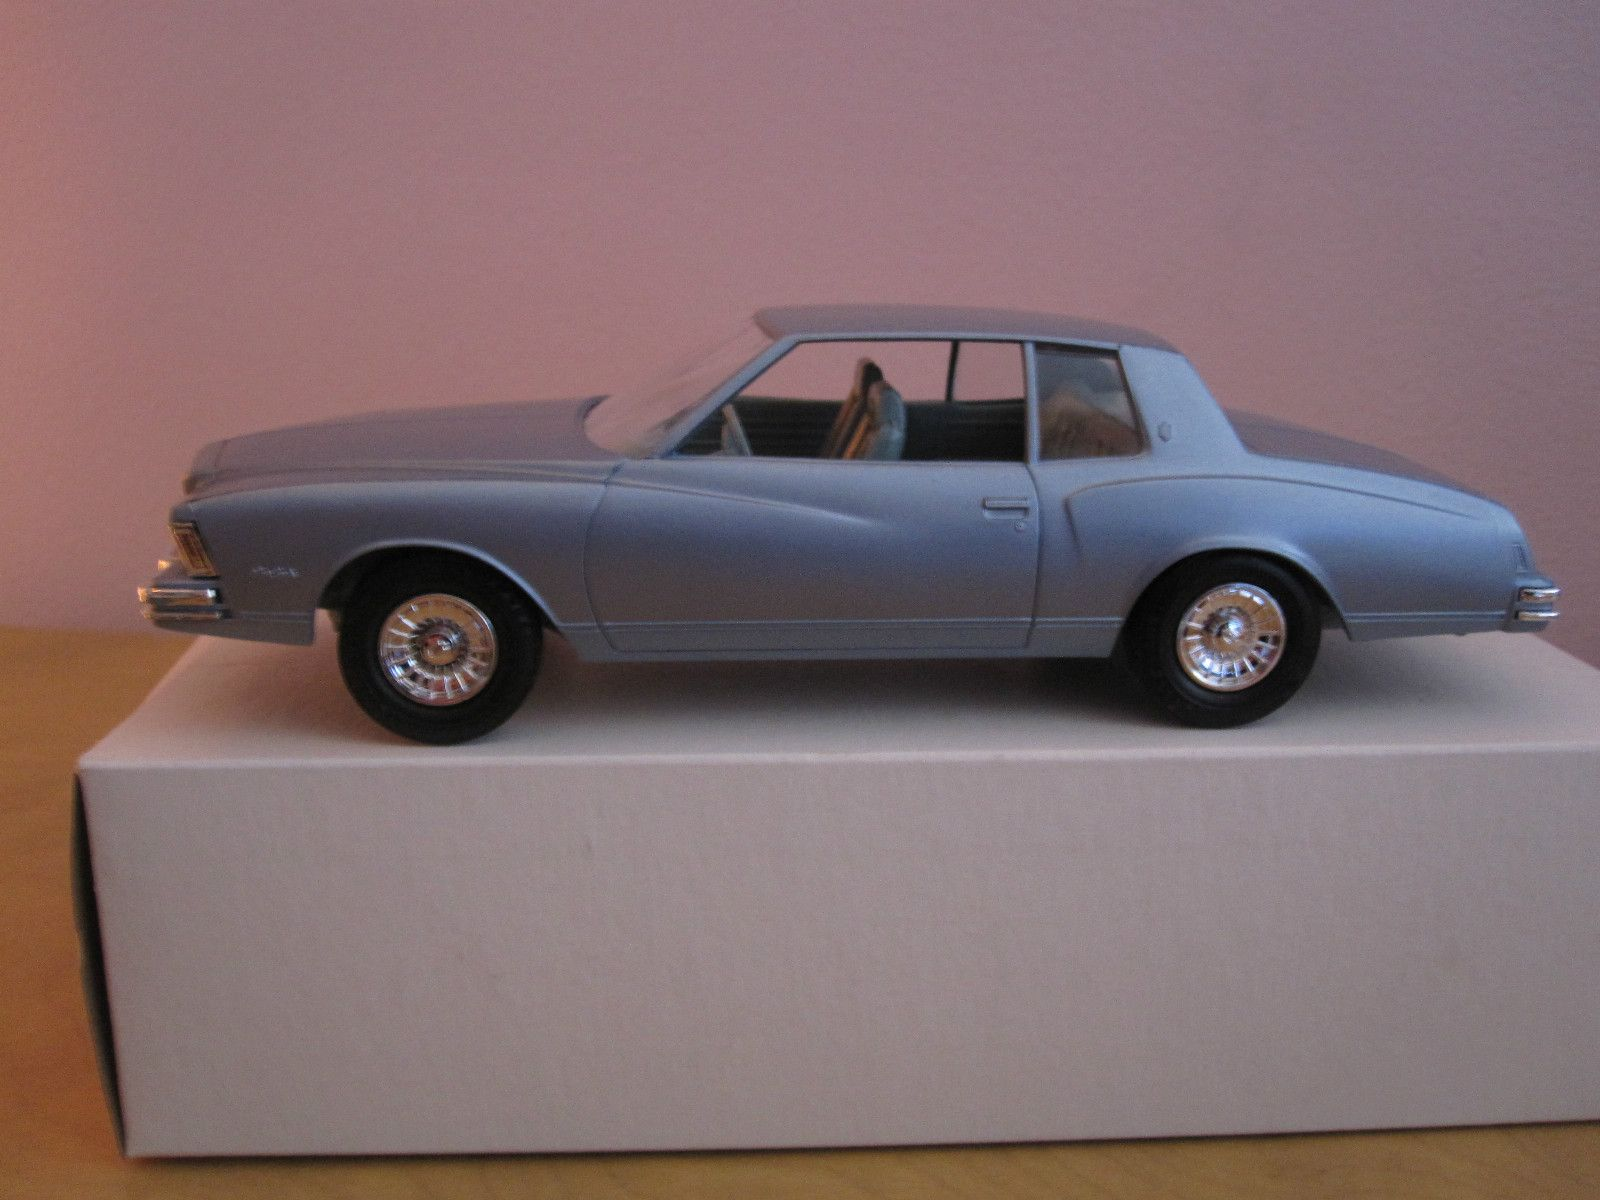 9d44b3b891d81051682b1fa2aa8feed8 Take A Look About 1980 Monte Carlo for Sale with Mesmerizing Photos Cars Review